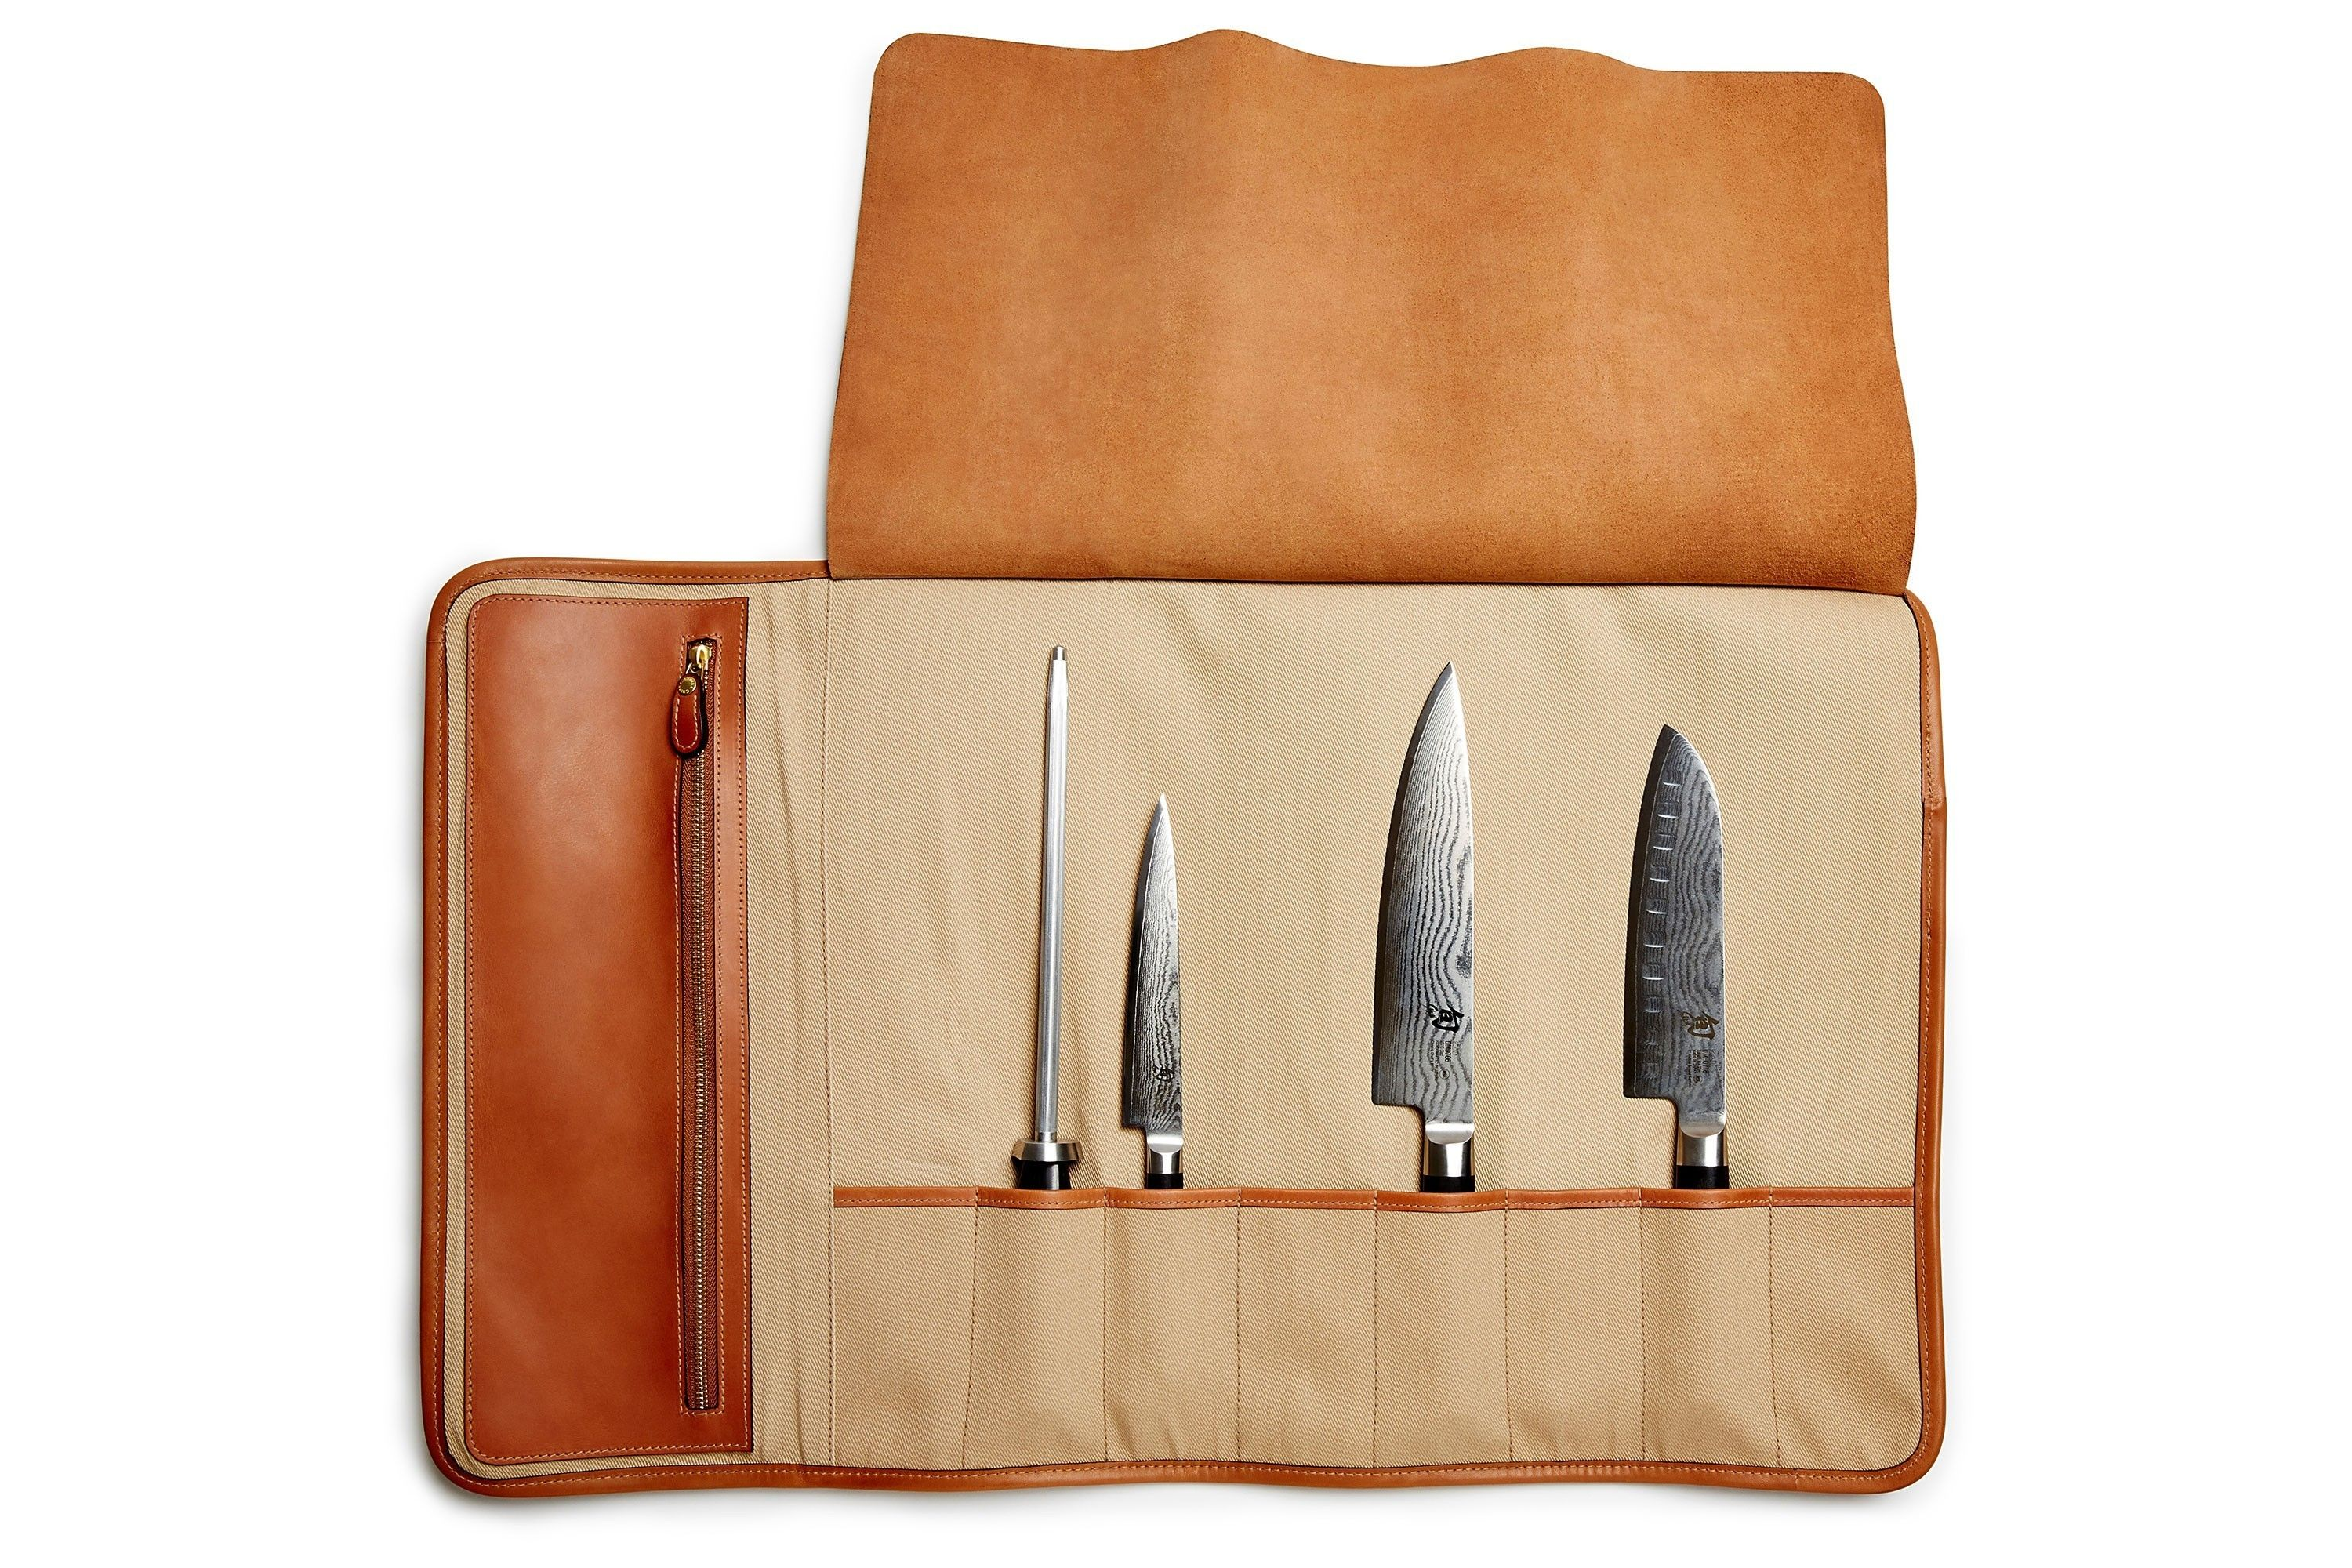 Fundas Para Cuchillos De Cocina Leather Knife Roll Chef S Knife Roll In Chestnut Leather